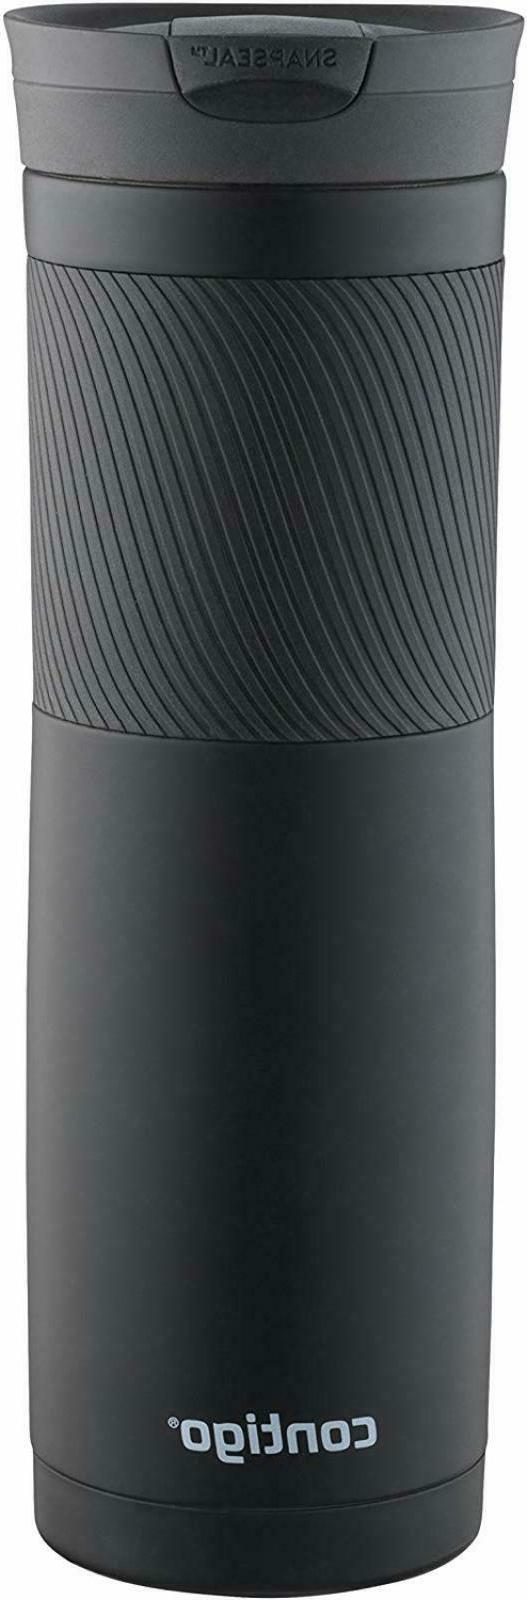 Travel Coffee Mug Cup Matte Black Thermal Insulated Large To